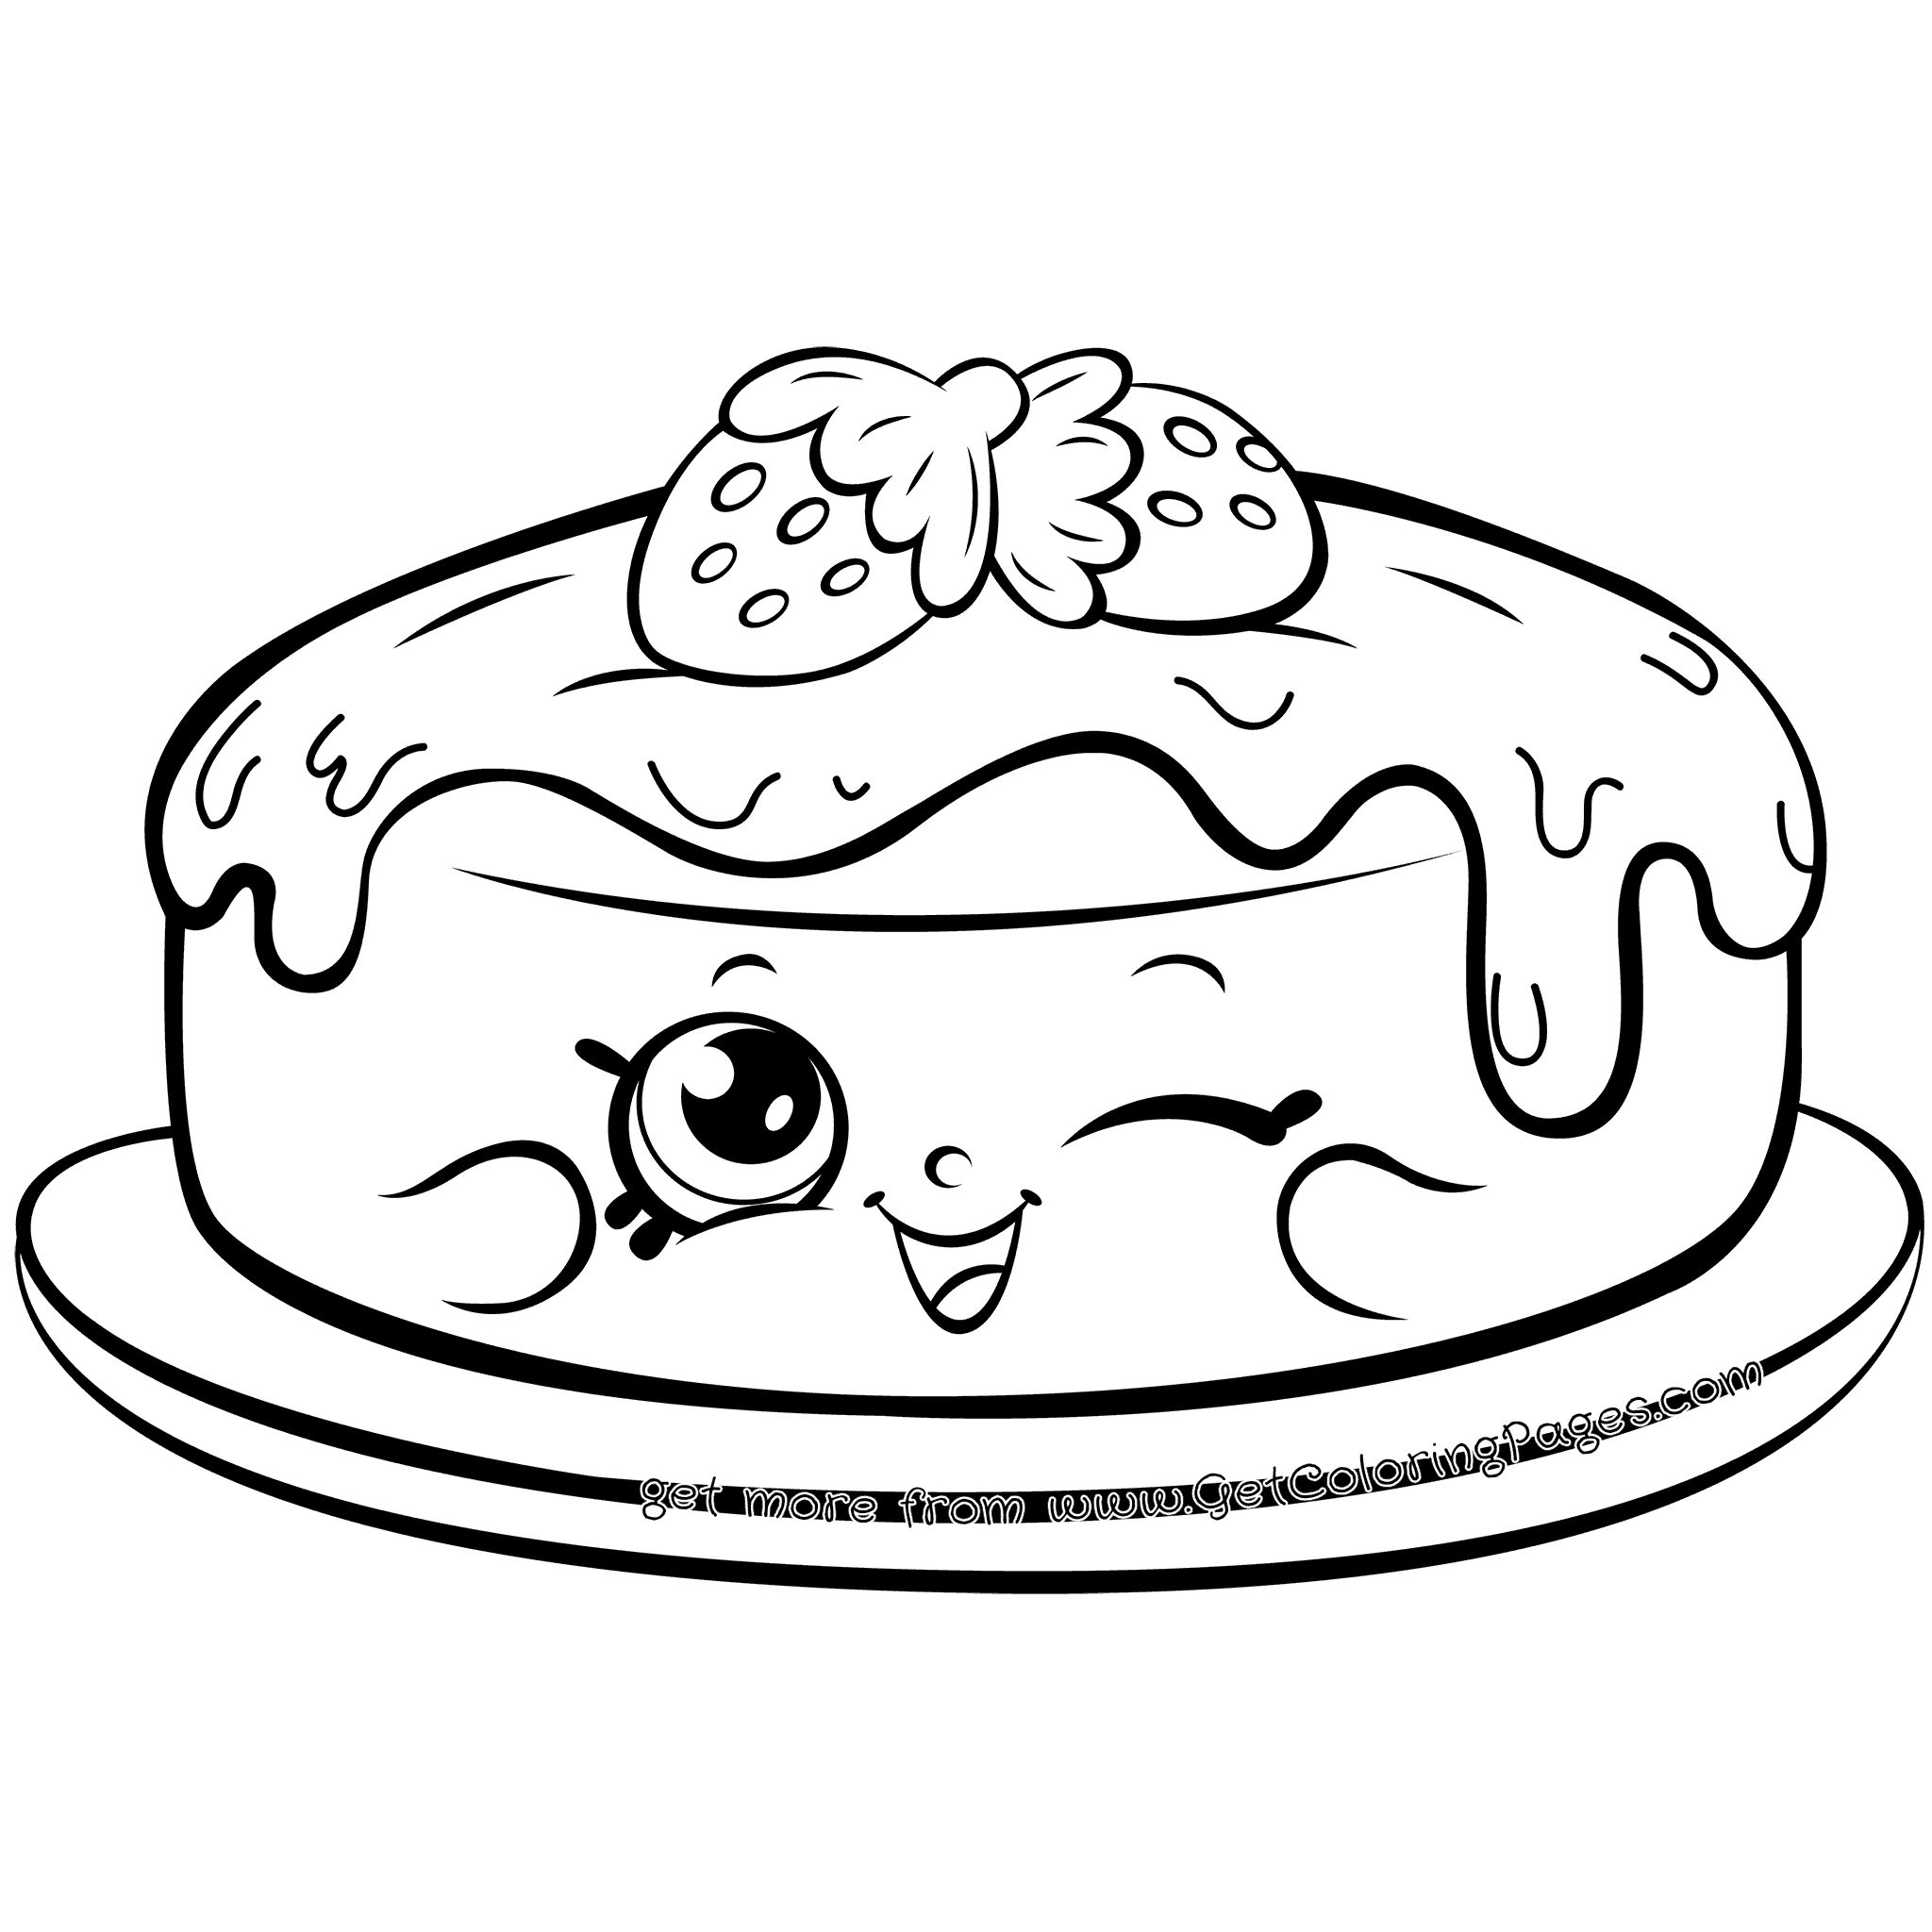 pancakes coloring pages - photo#16